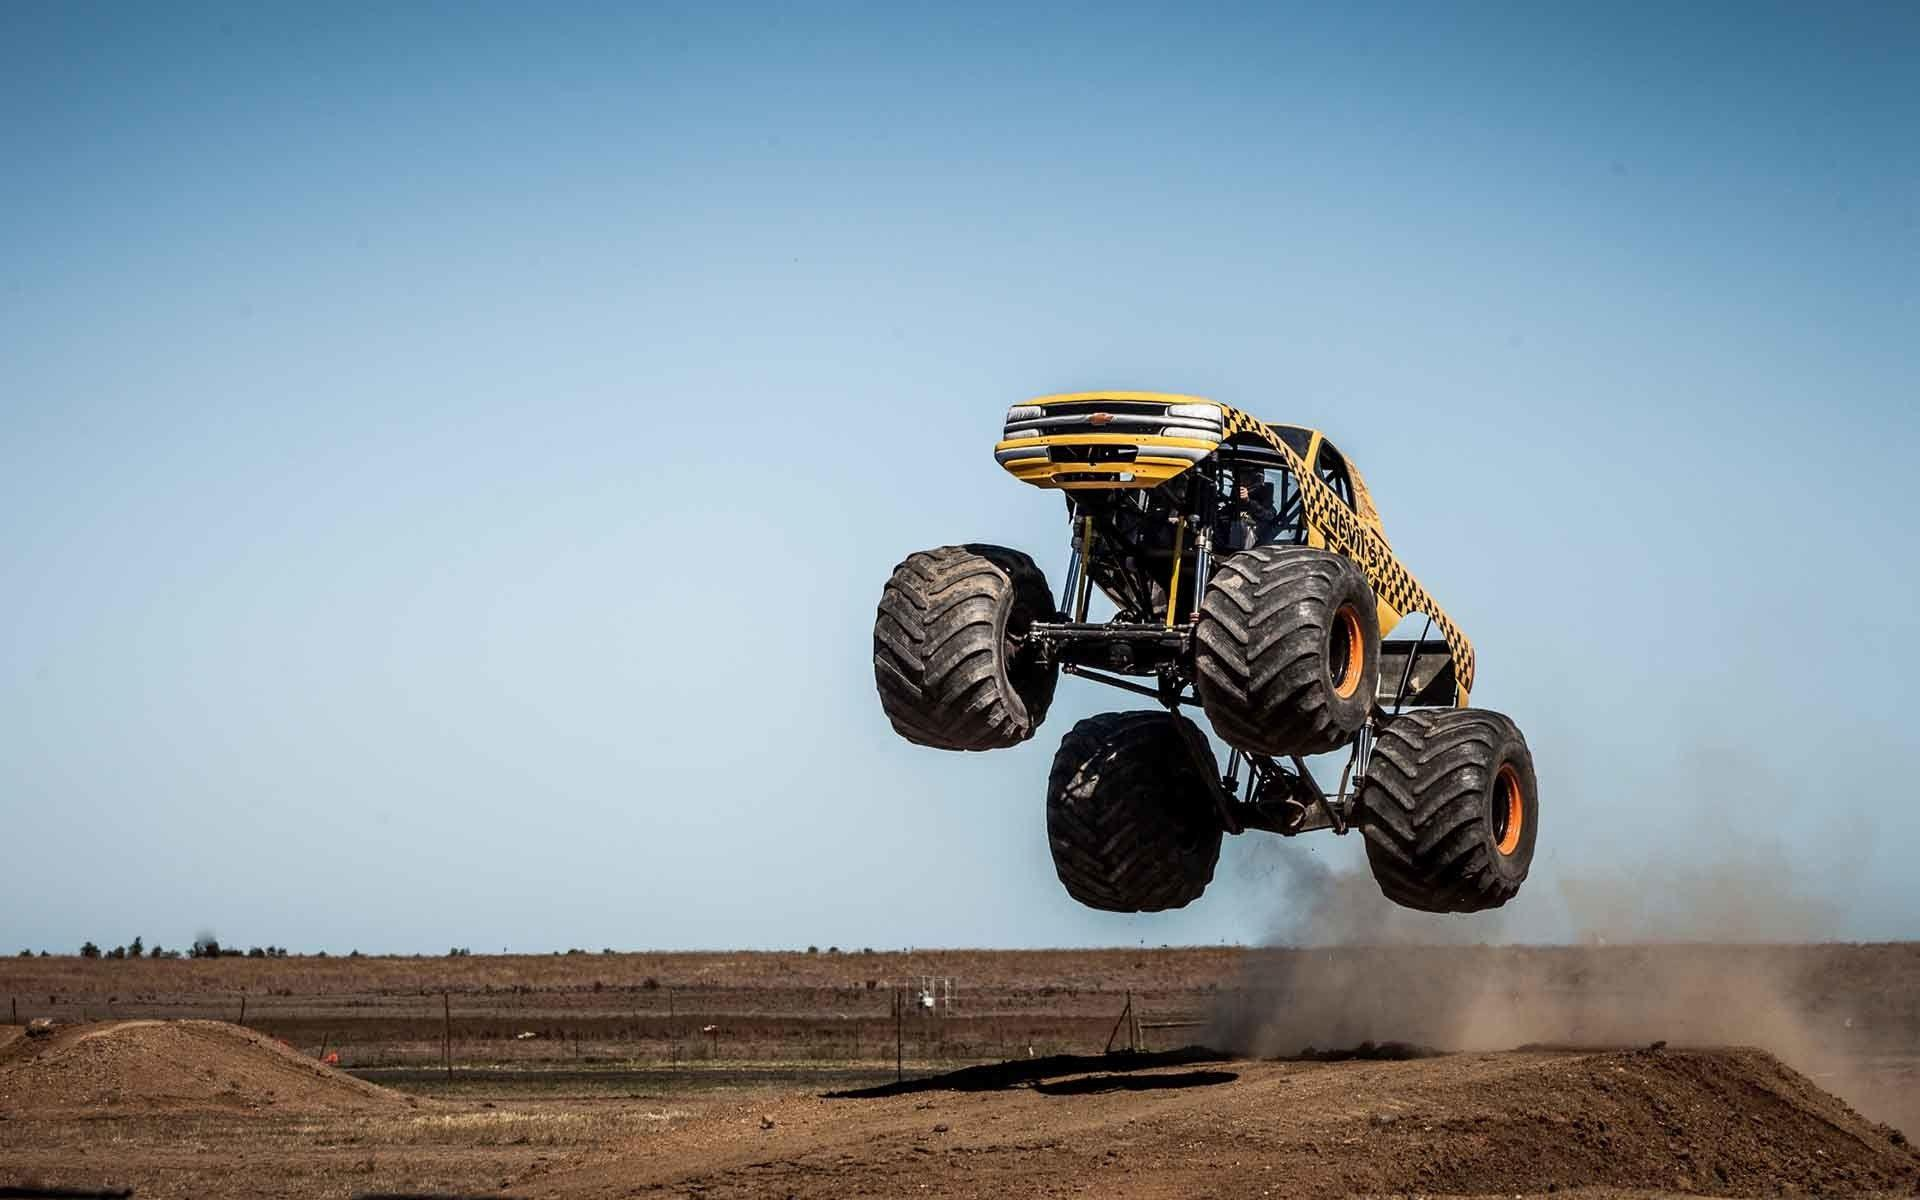 Monster Truck Full Hd Wallpapers ✓ Labzada Wallpaper